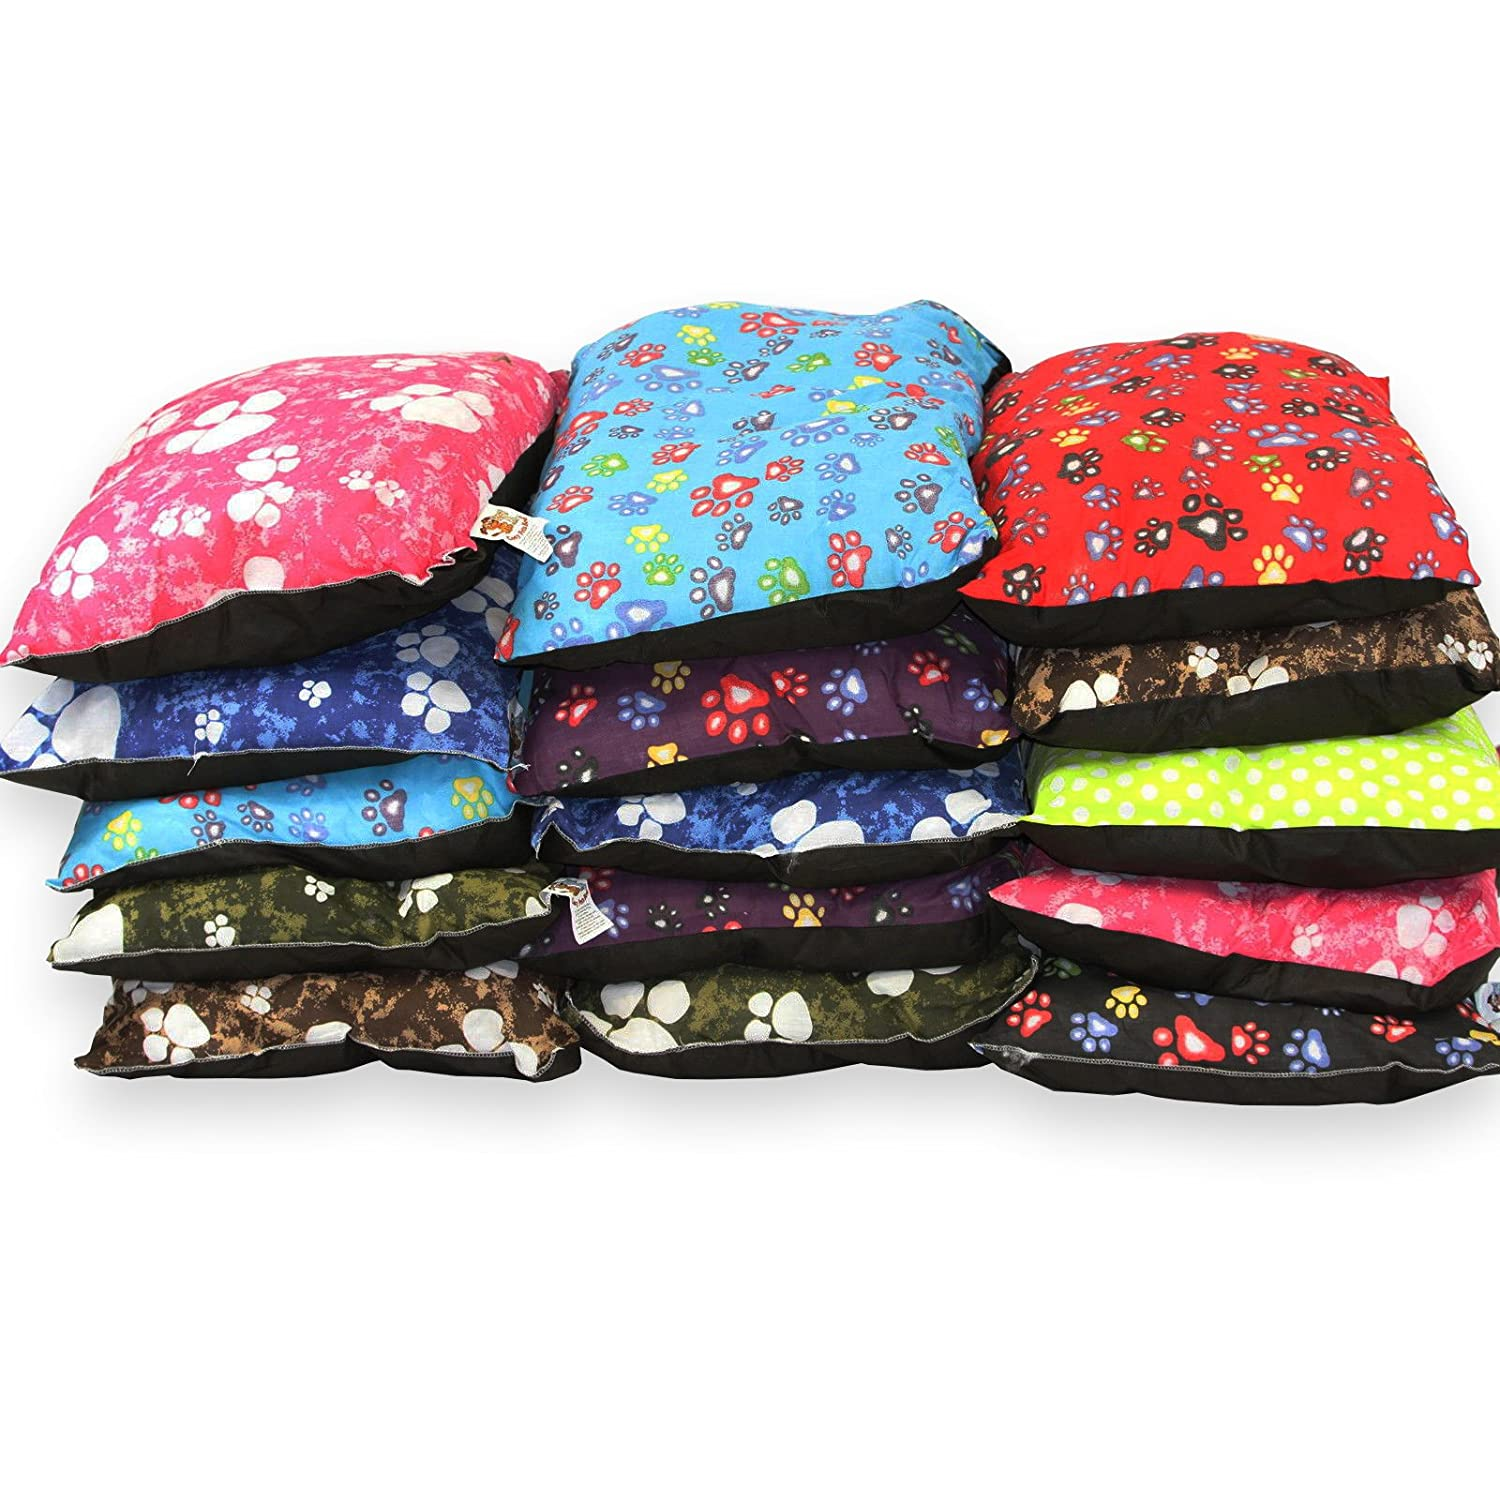 Small 19\ Pet Cushion Bundles 30 PCS (Wholesale) NEW Small 19  x 28  MIX COLOUR Dog Bed (Small 19  x 28 )